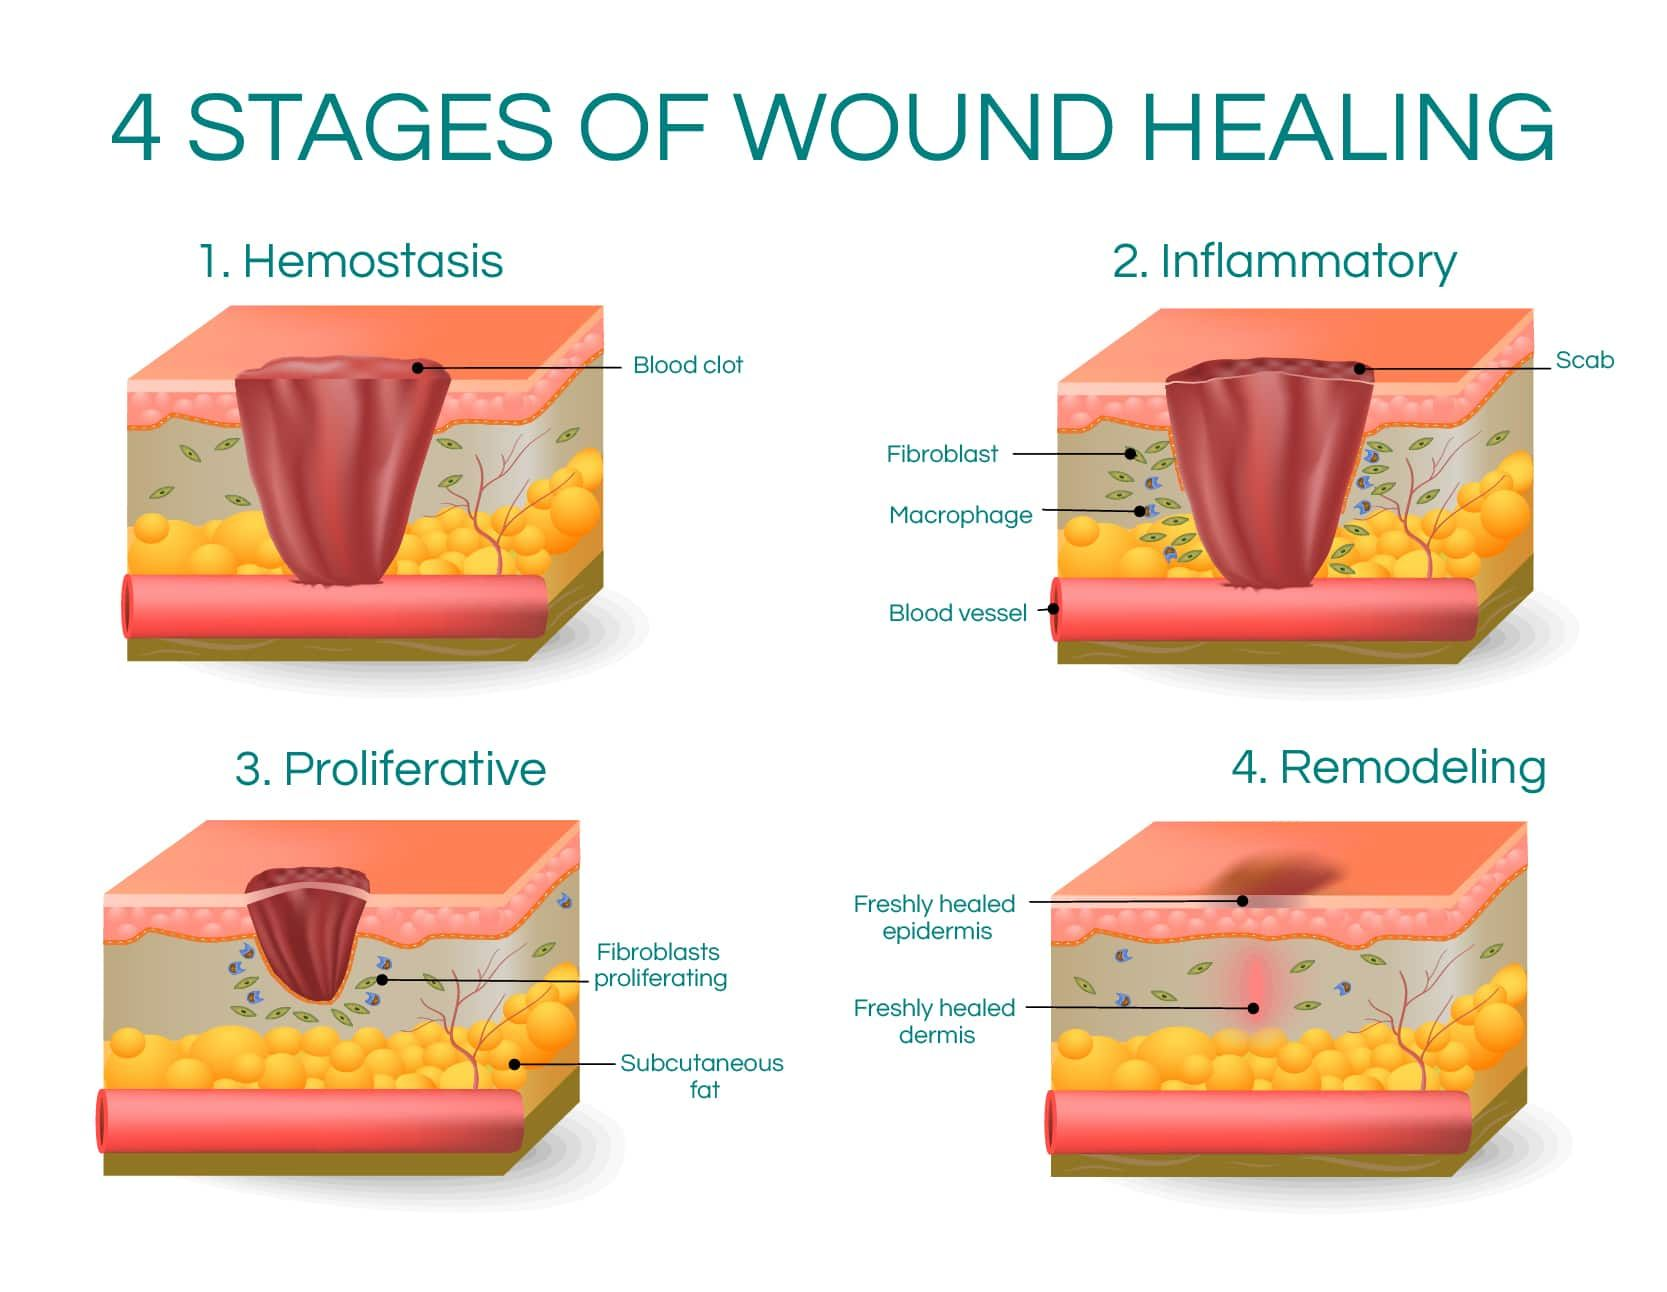 4 Stages of Wound Healing Wound healing, Color change